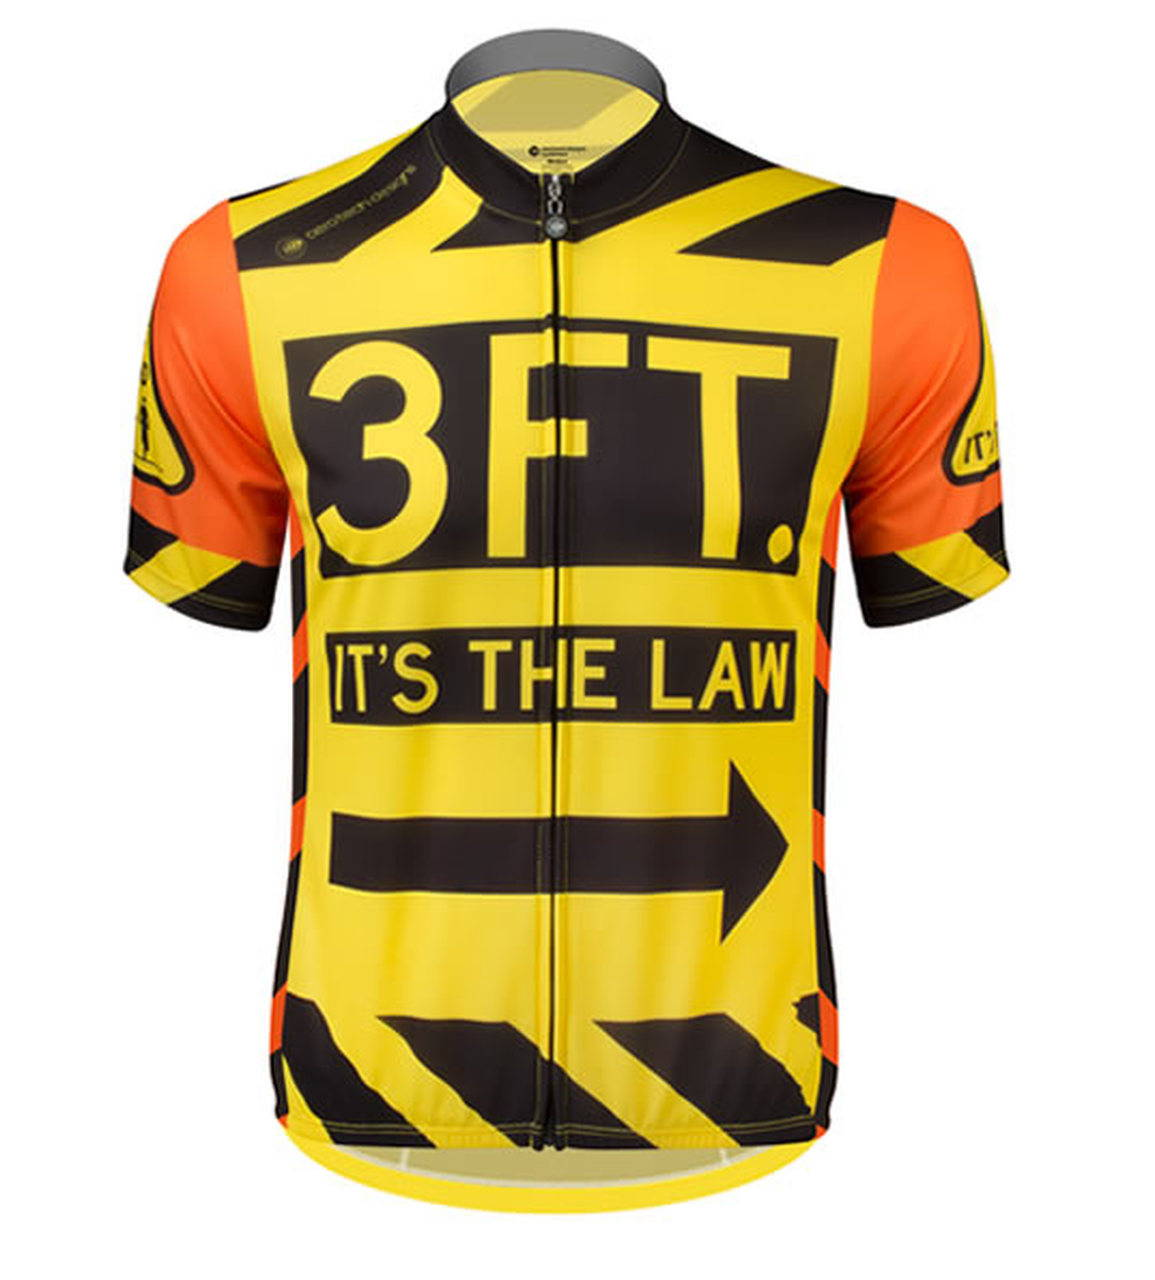 3 feet Cycling Jersey